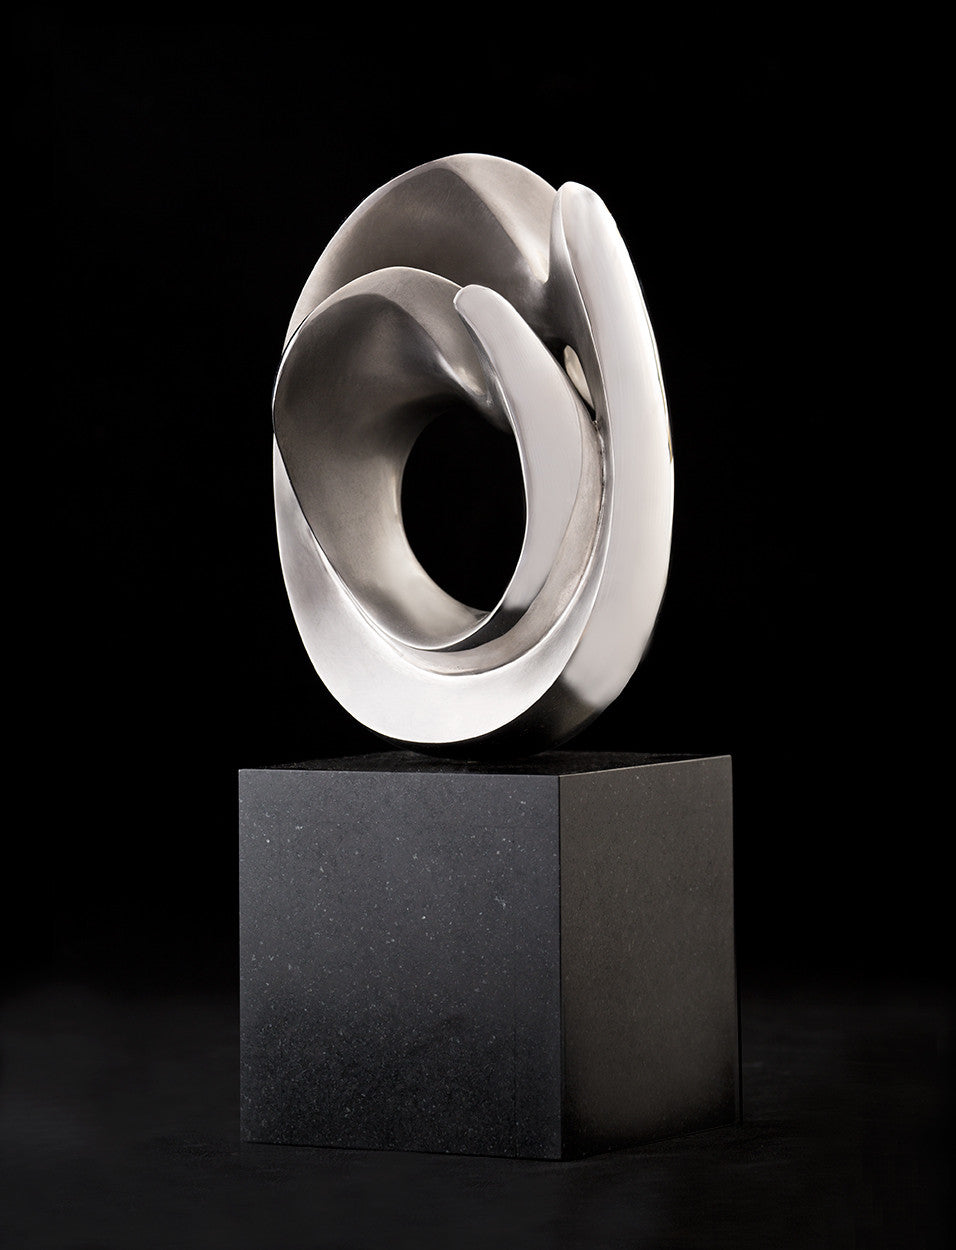 Wave Form II / 15 x 6 x 6 / stainless steel on granite base